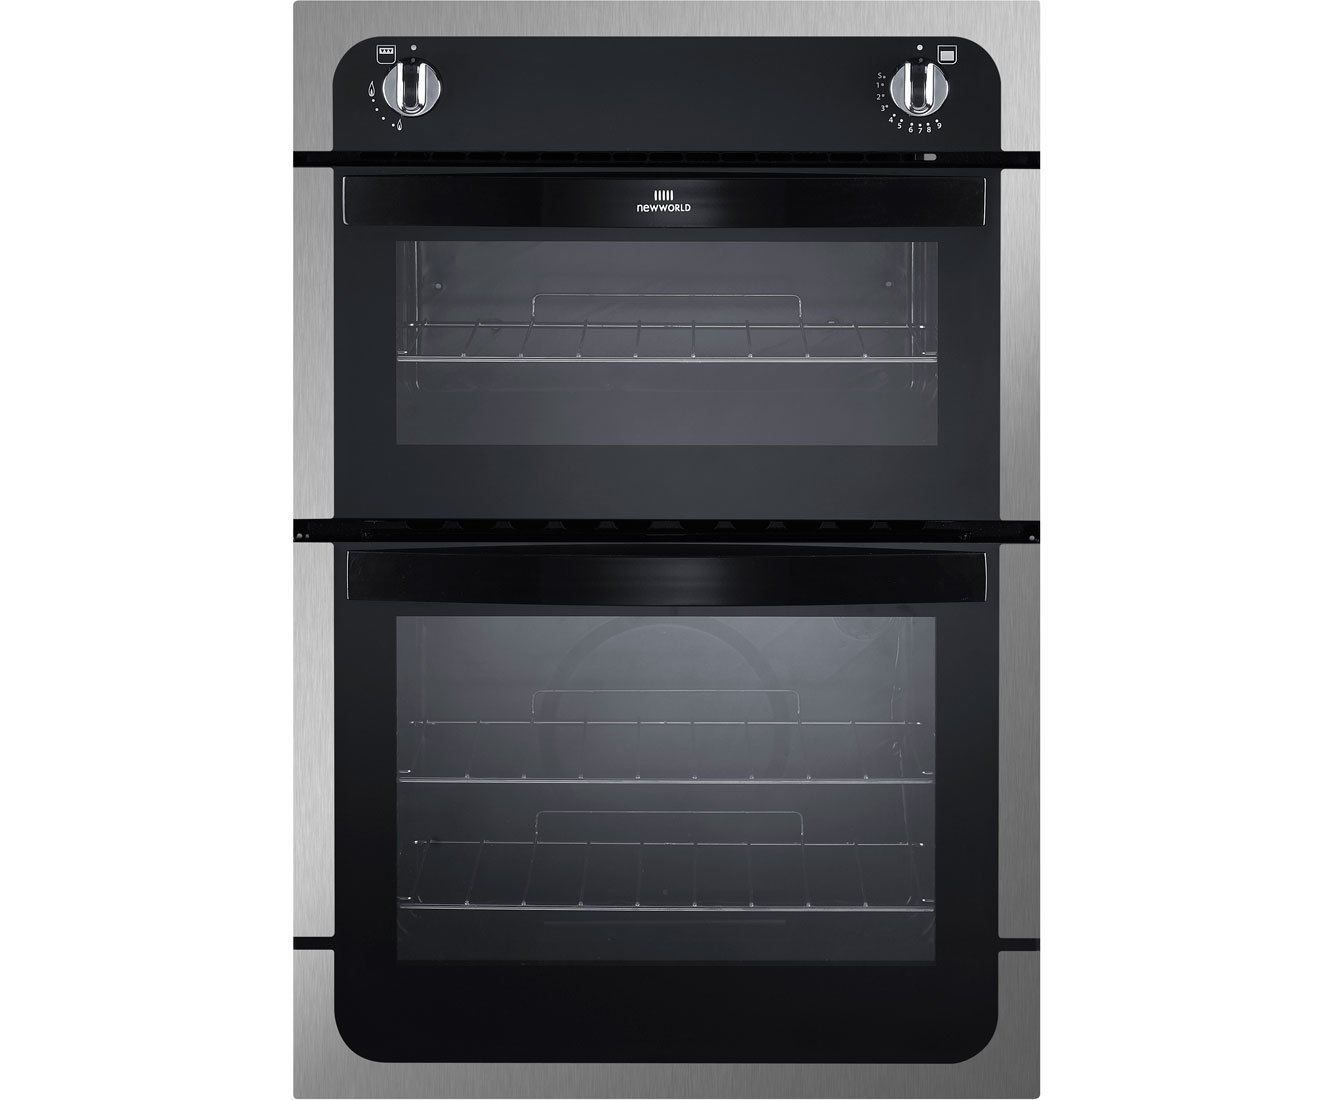 Single Oven With Grill Part - 41: New World NW901GSTA 900mm Built-in Single Gas Oven Grill FSD S\/Steel:  Amazon.co.uk: Large Appliances